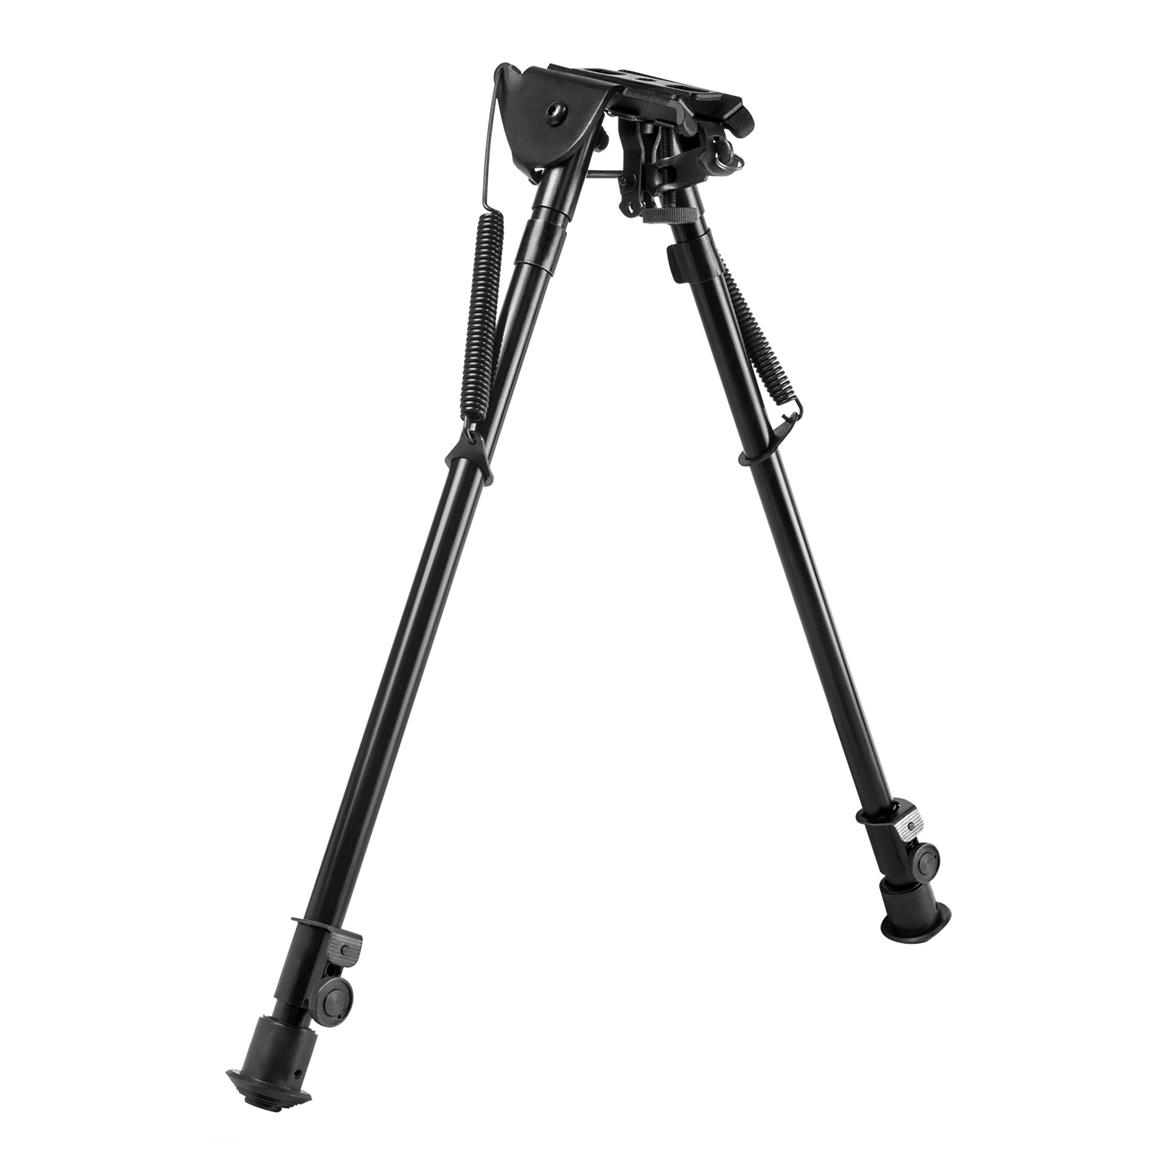 NcSTAR Tall Friction Precision-Grade Bipod